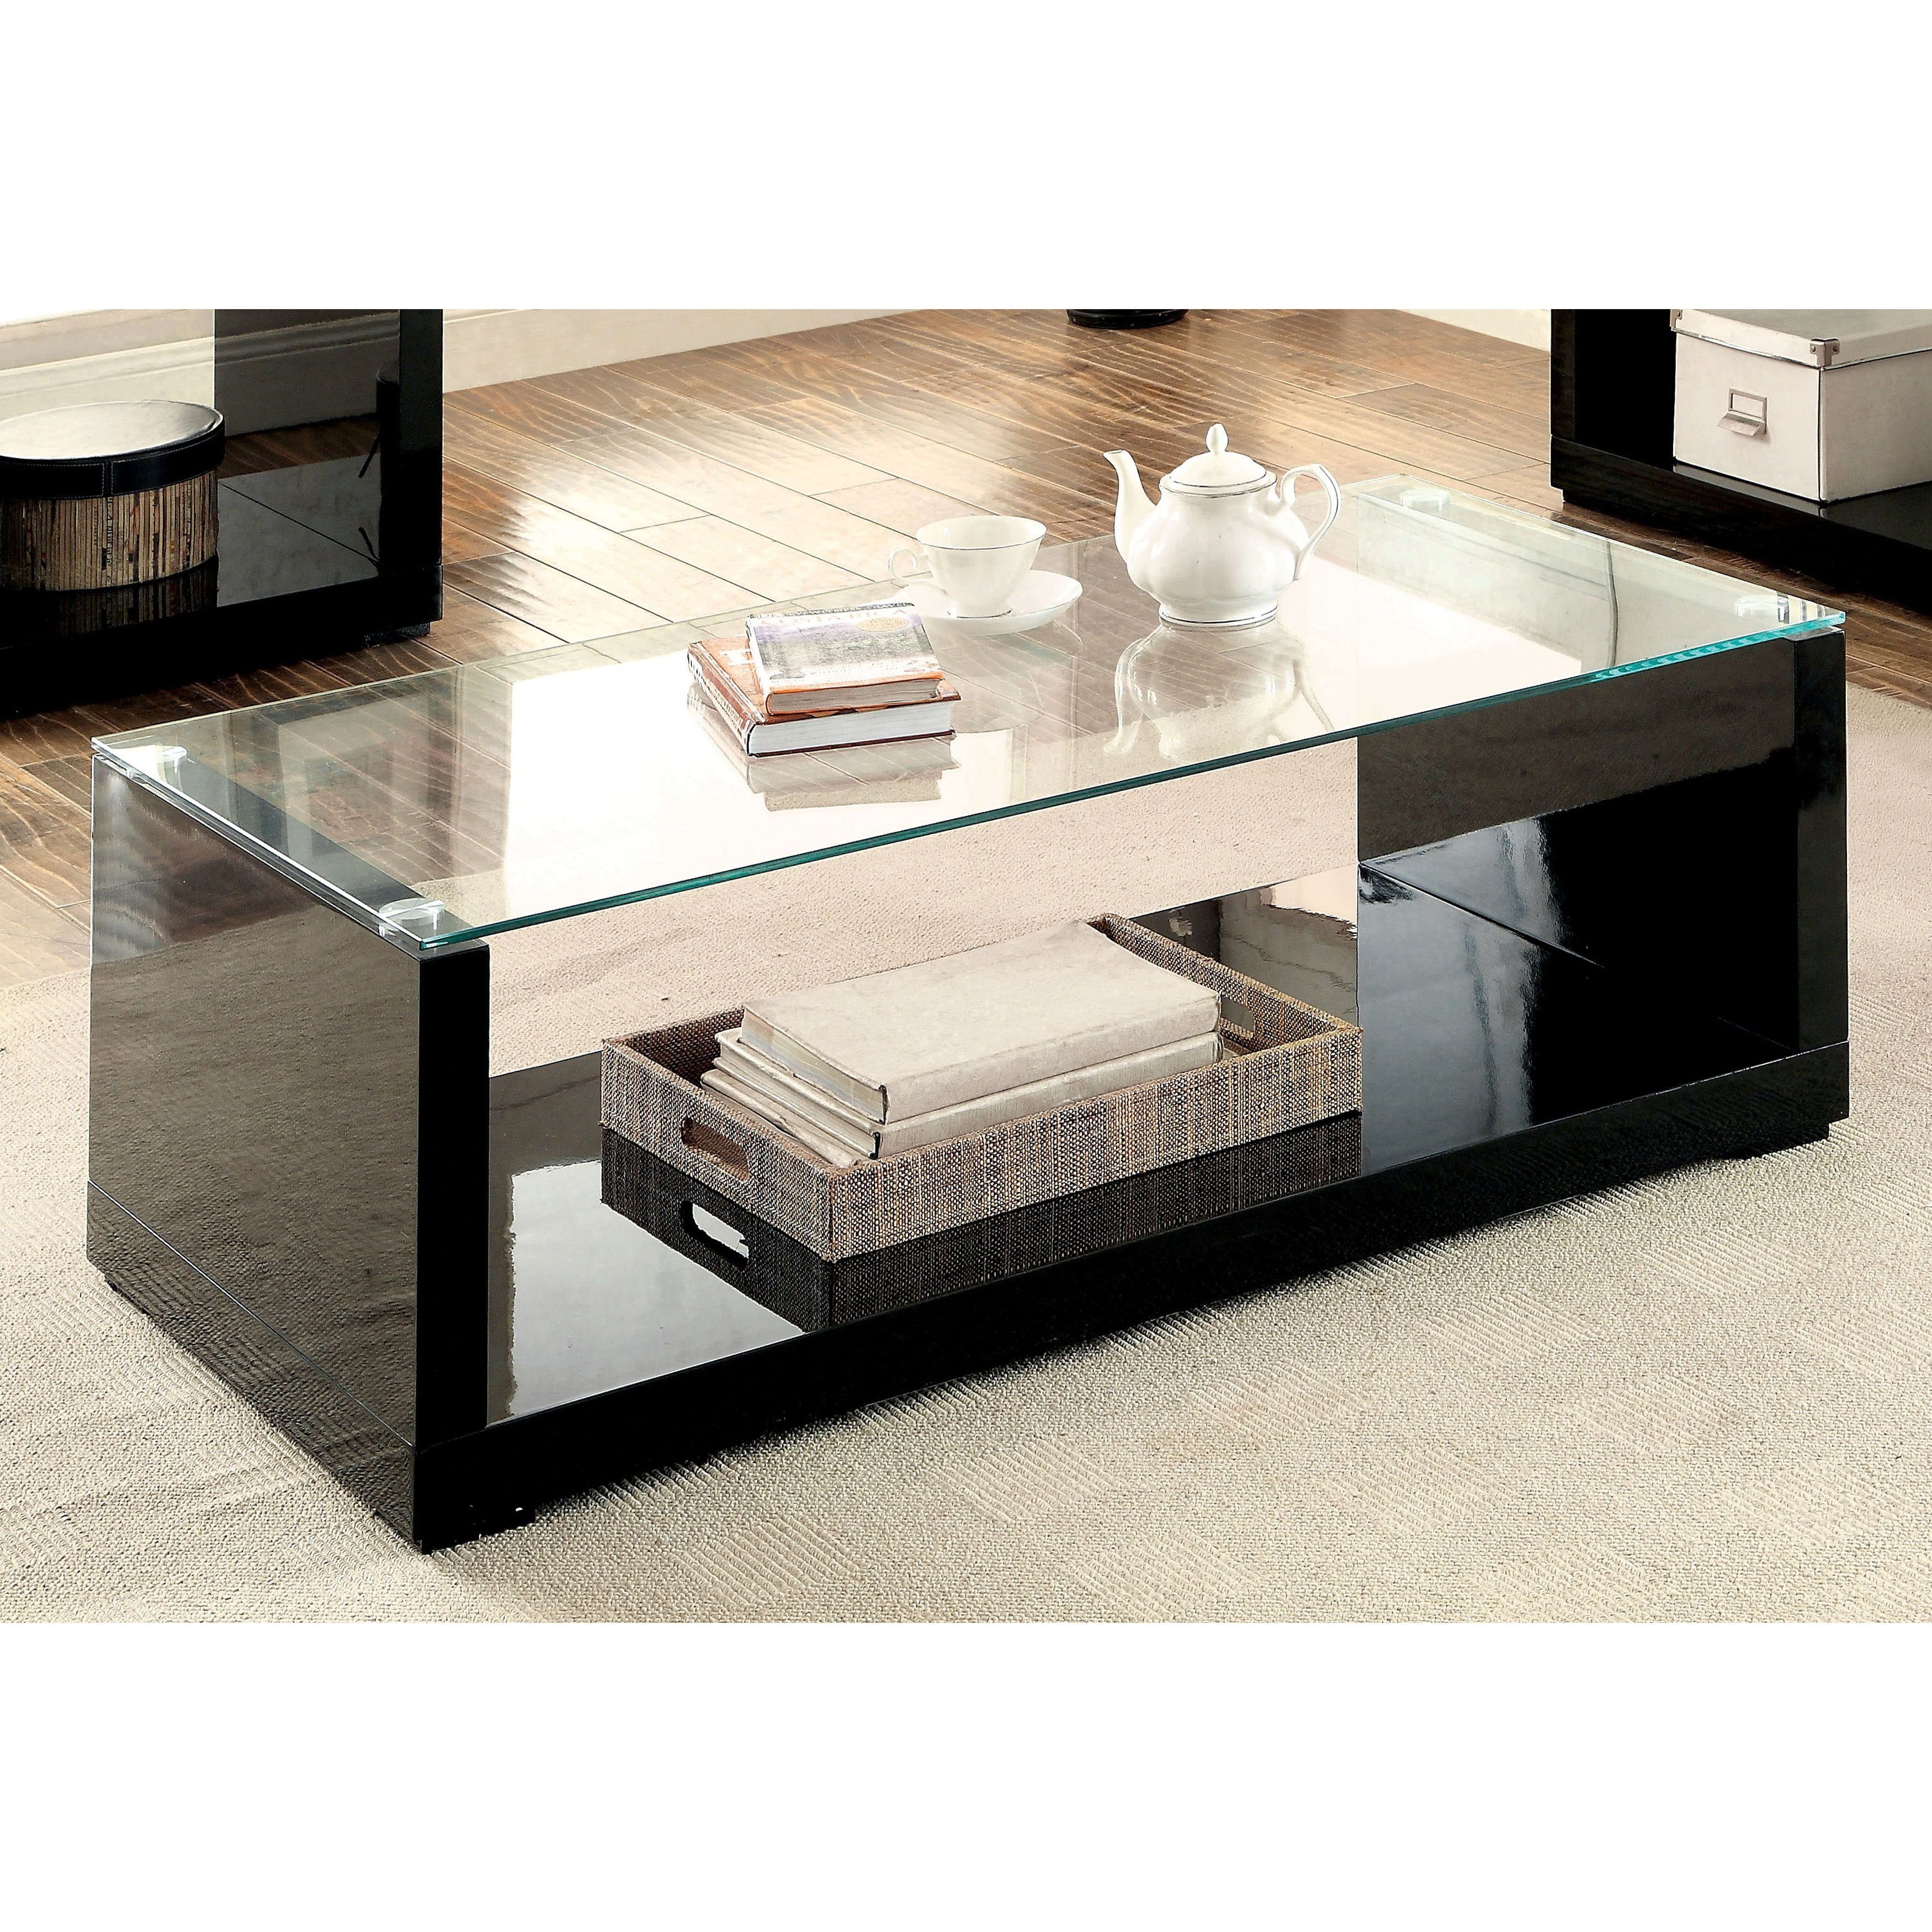 Our Best Living Room Furniture Deals Coffee Table White Coffee Table Modern Contemporary Coffee Table [ 3500 x 3500 Pixel ]